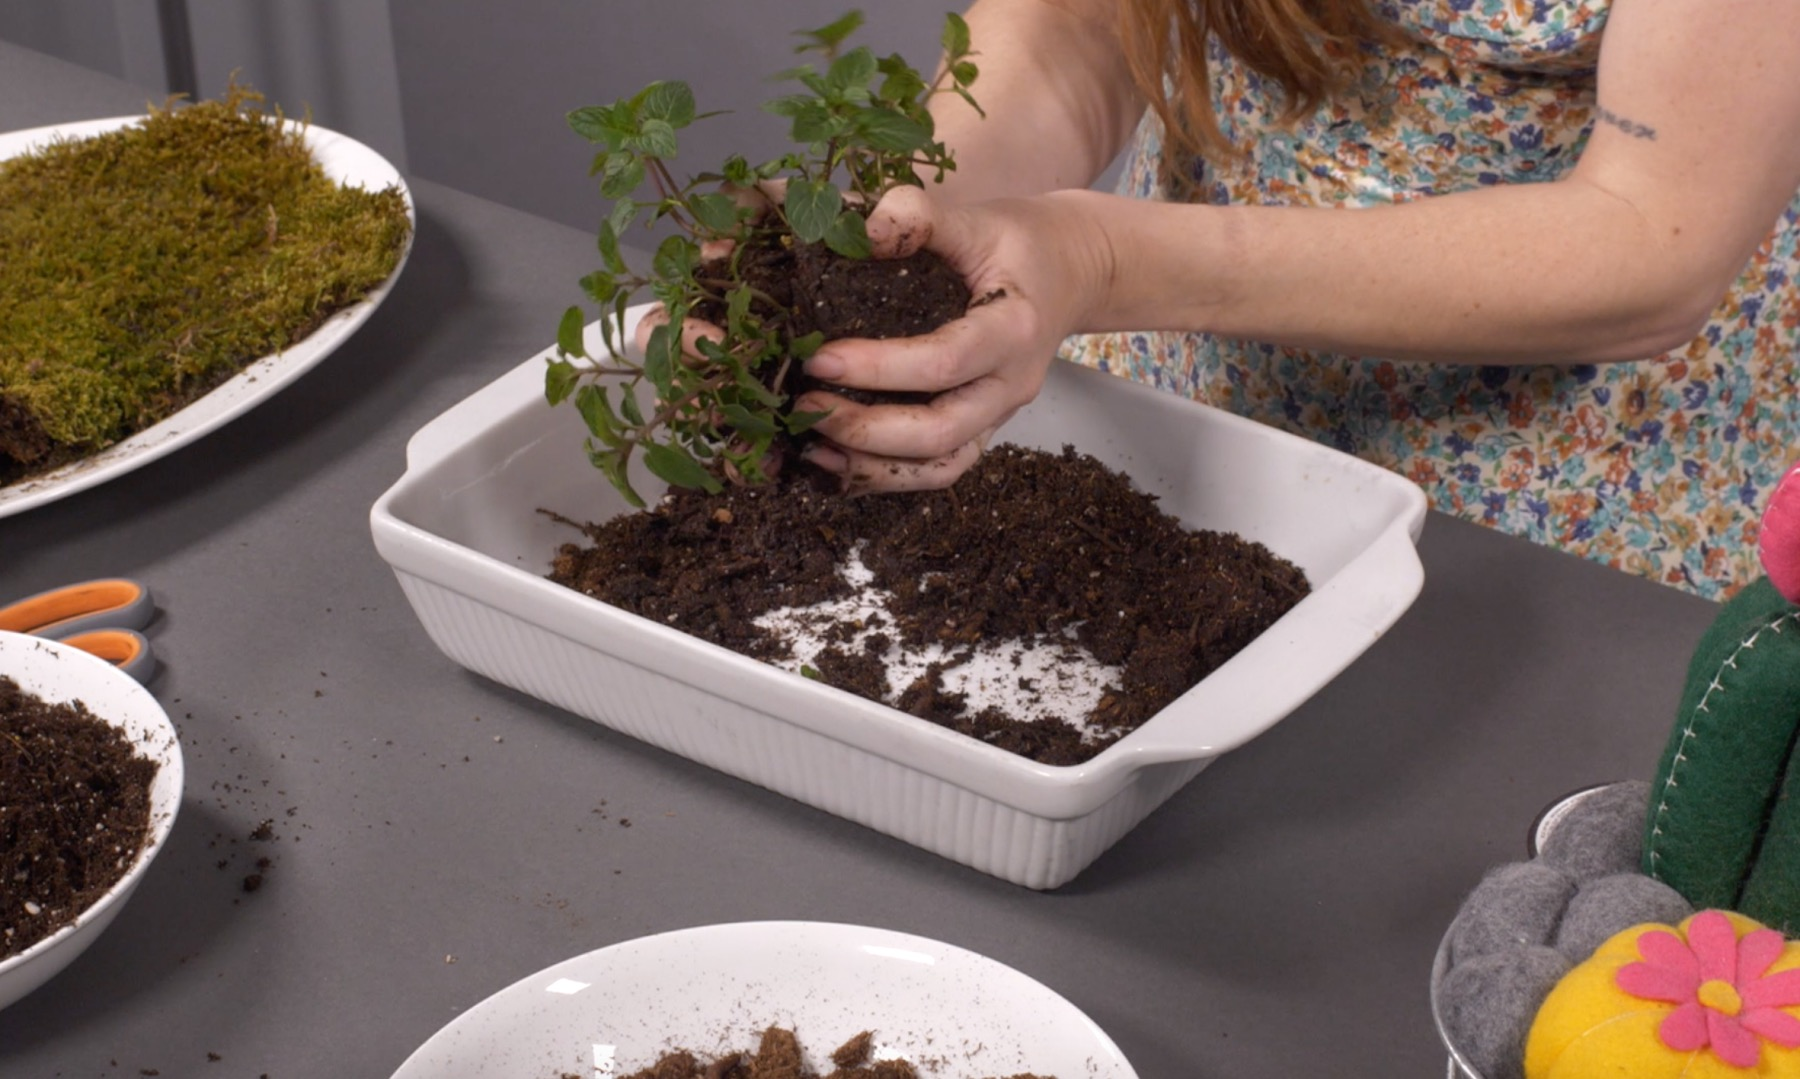 squeeze the mud ball together with the plant inside